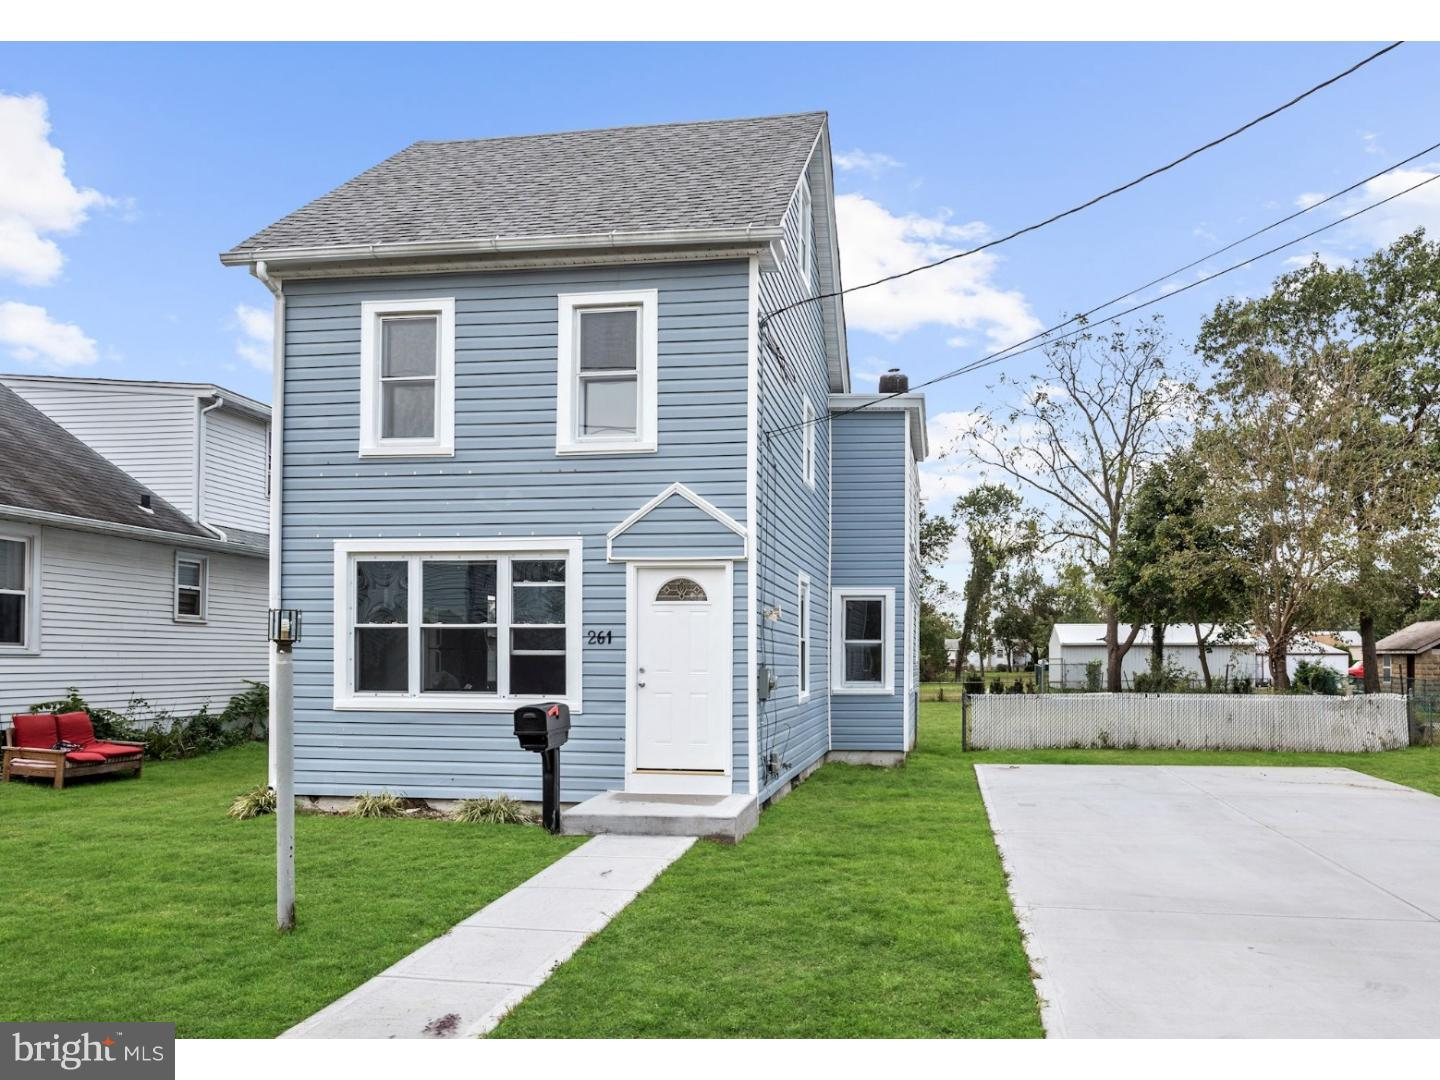 Single Family Home for Sale at 261 HOOKER Street Riverside, New Jersey 08075 United States